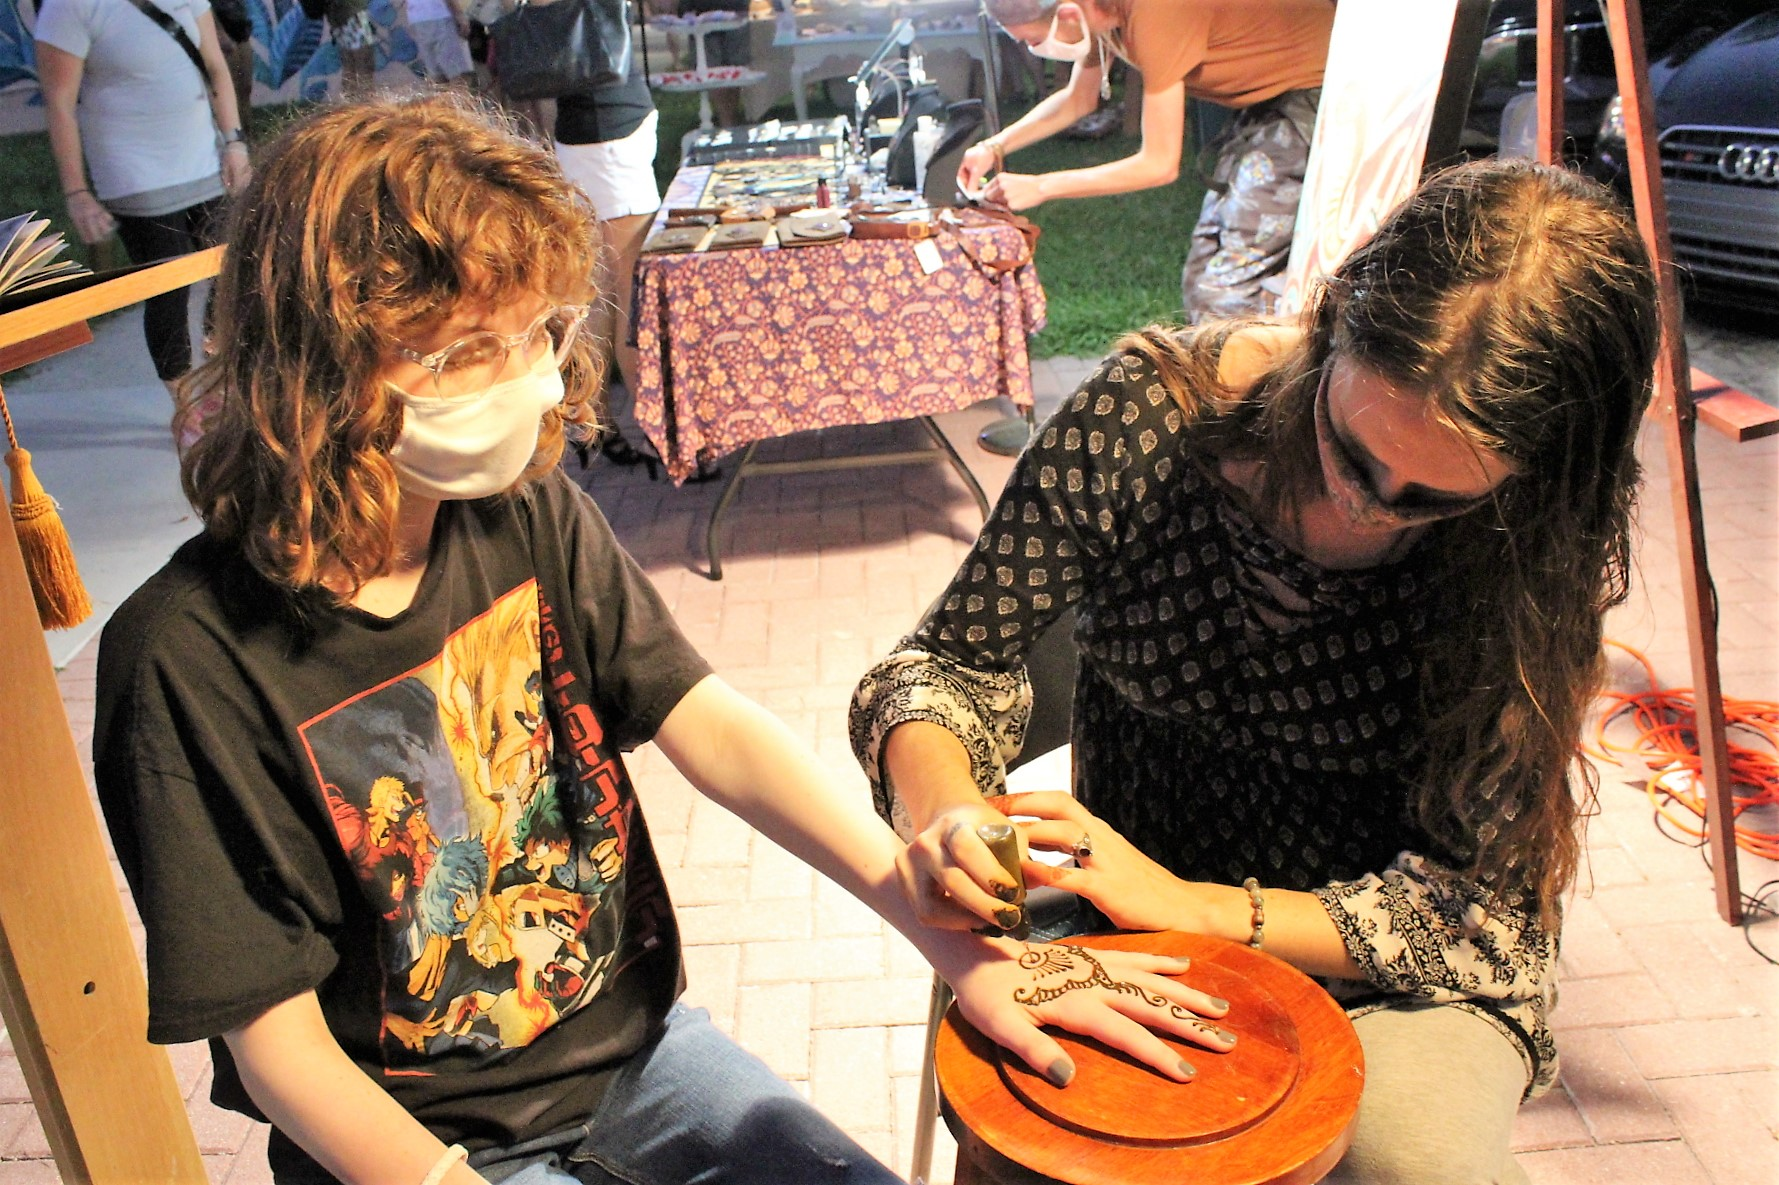 Two people sit at a henna painting station as one paints another's hand with henna.